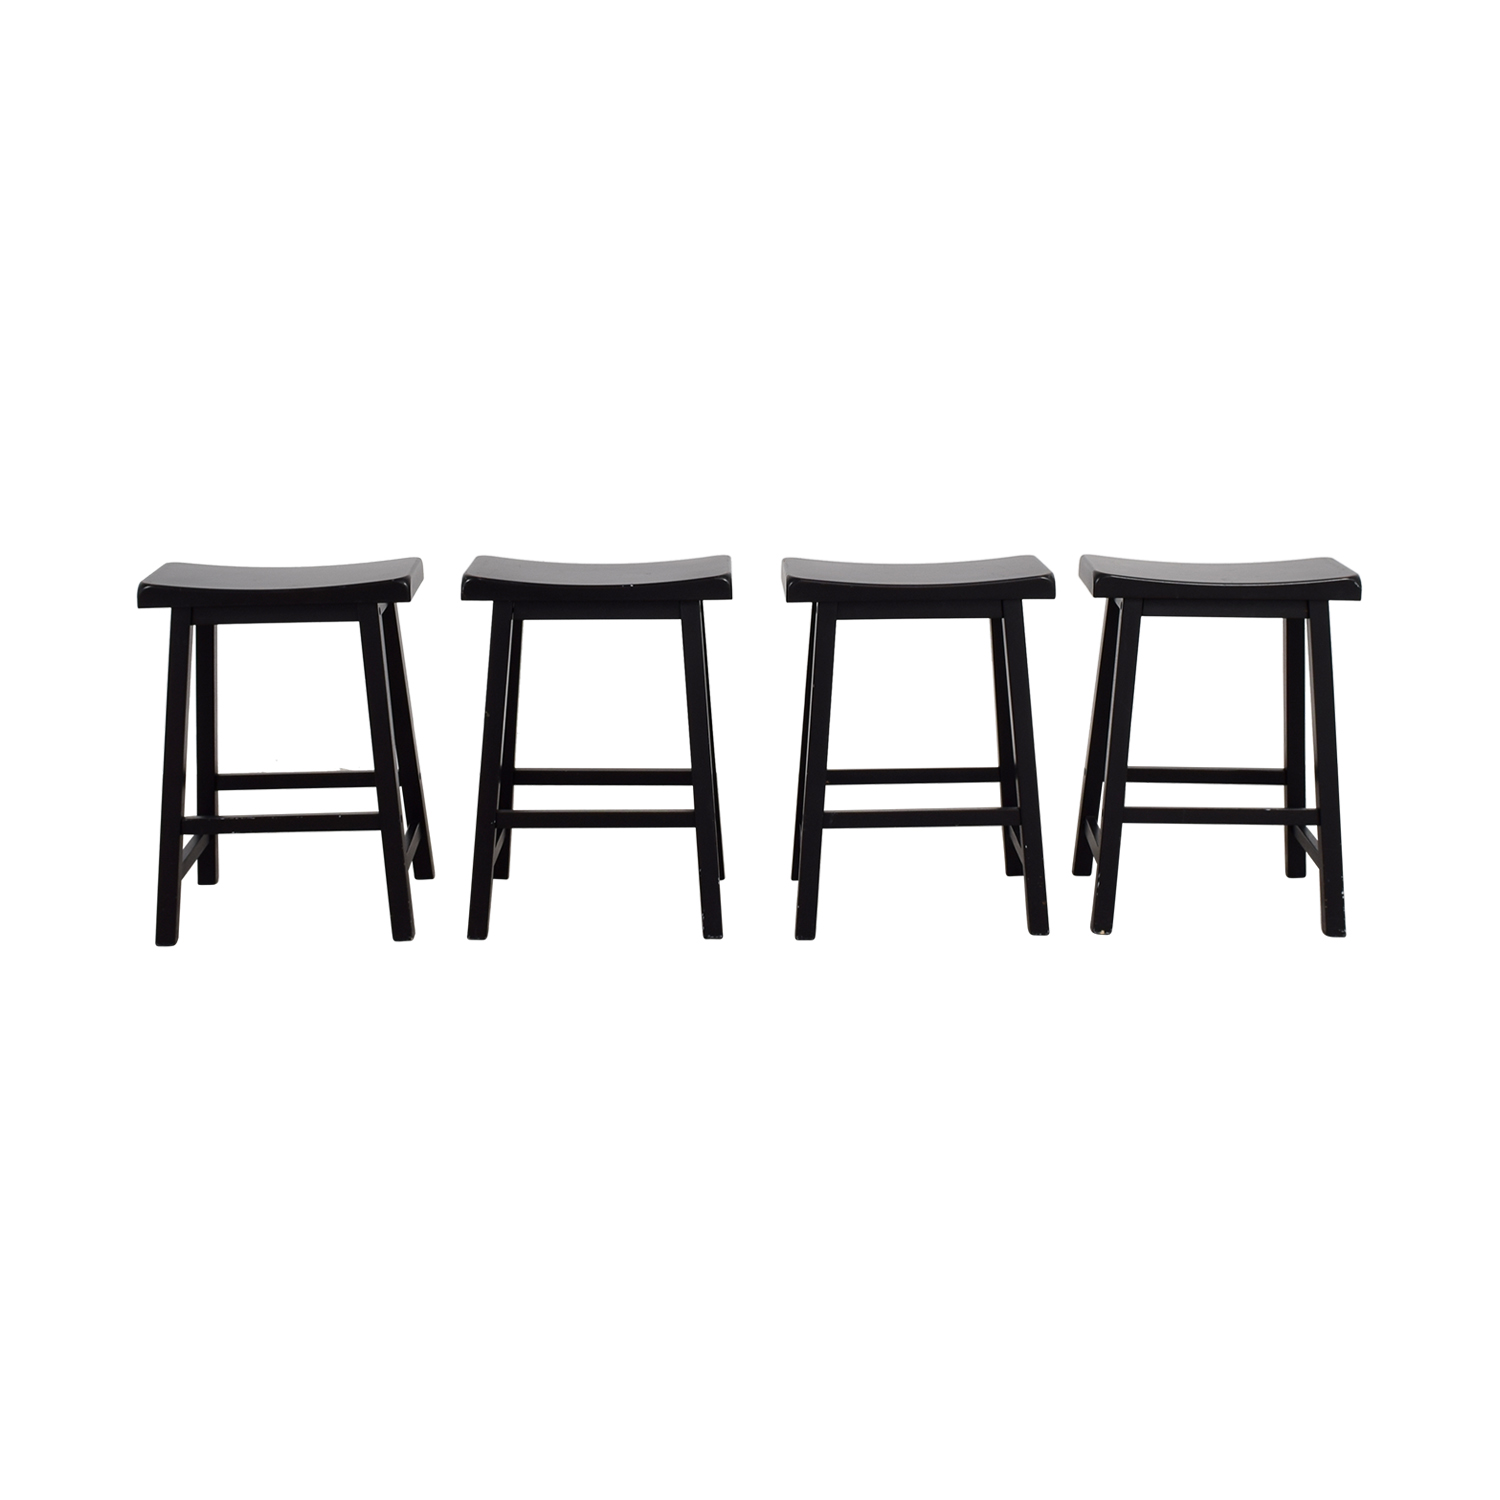 Rectangular Wood Bar Stools Chairs